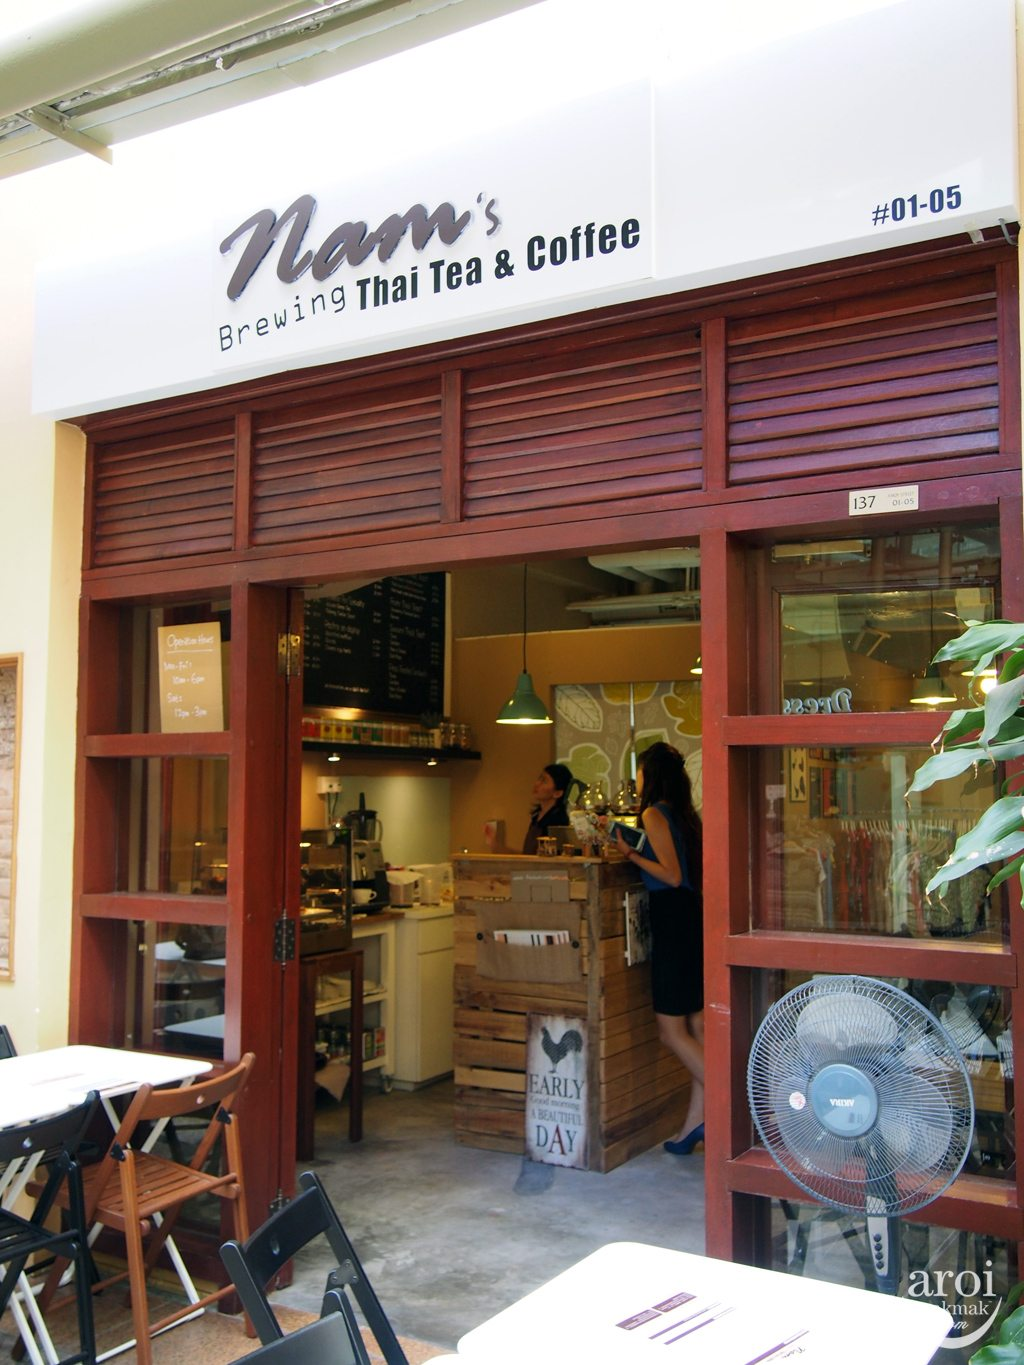 Nam's Brewing Thai Tea & Coffee - Facade